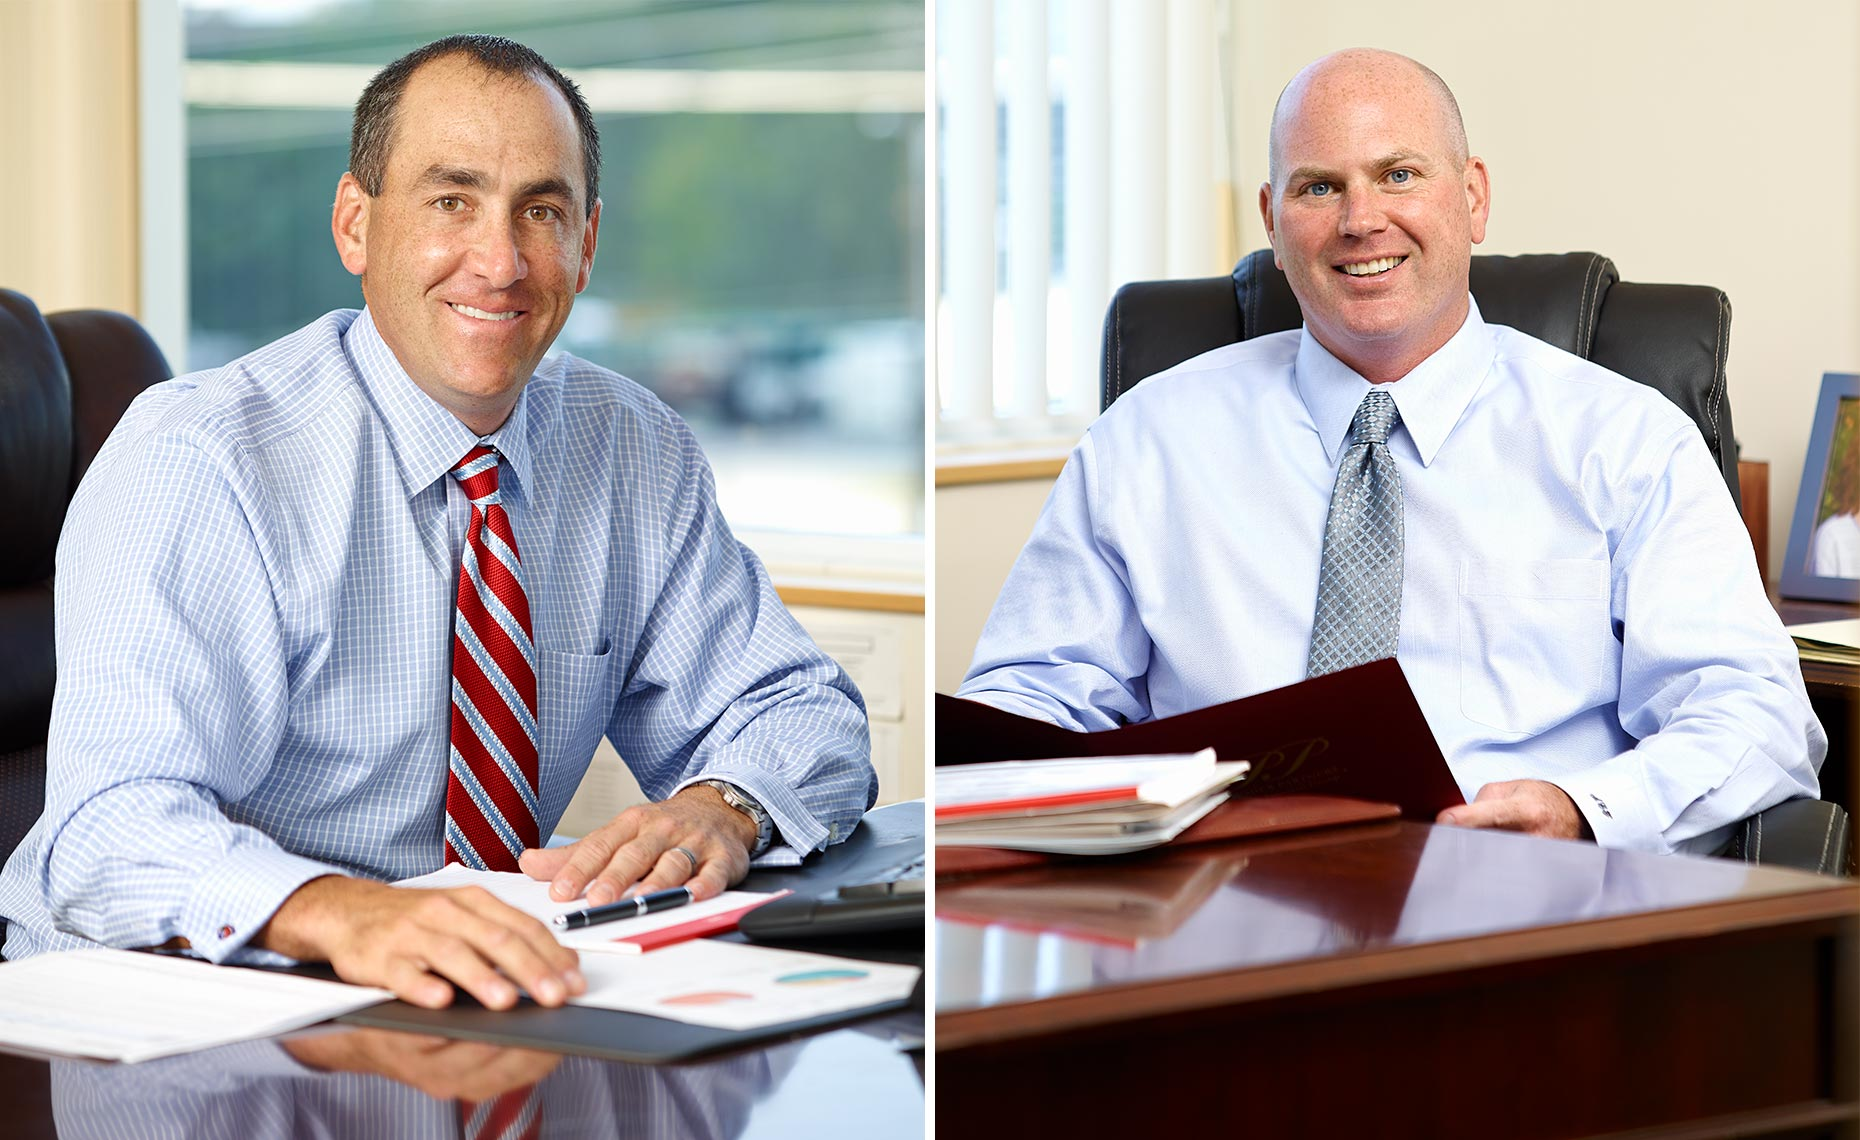 Financial Advisor Portraits- Greg Anthony Photographer, Boston, Massachusetts-Steve-and-Al-F